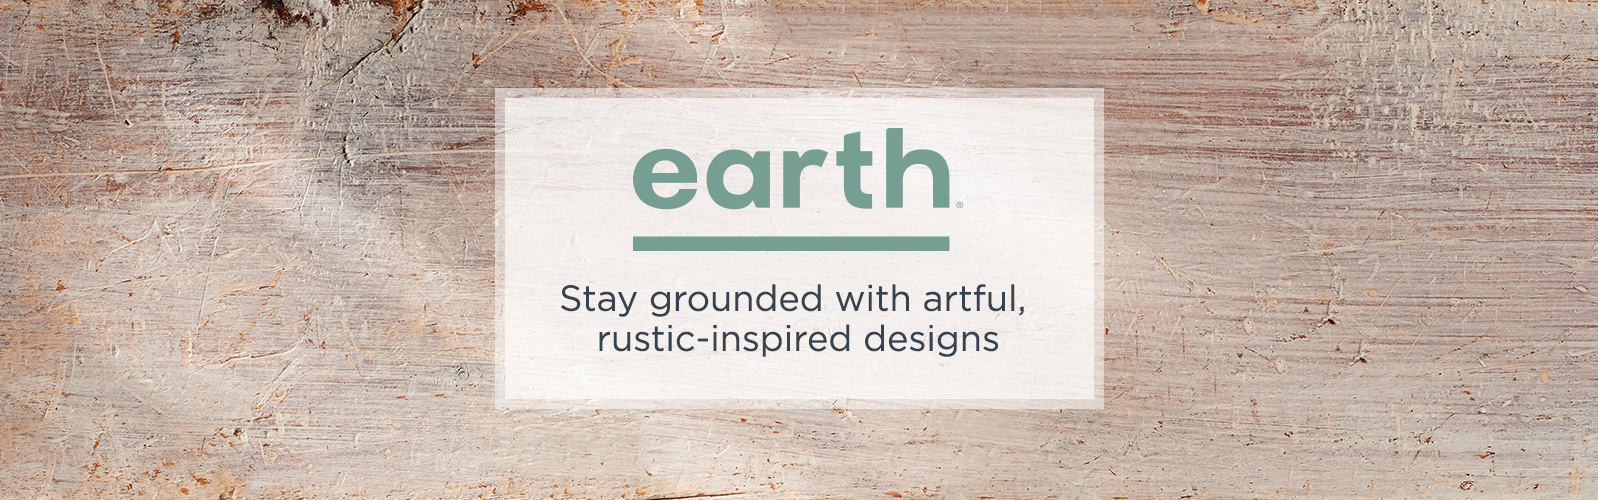 Stay grounded with artful, rustic-inspired designs